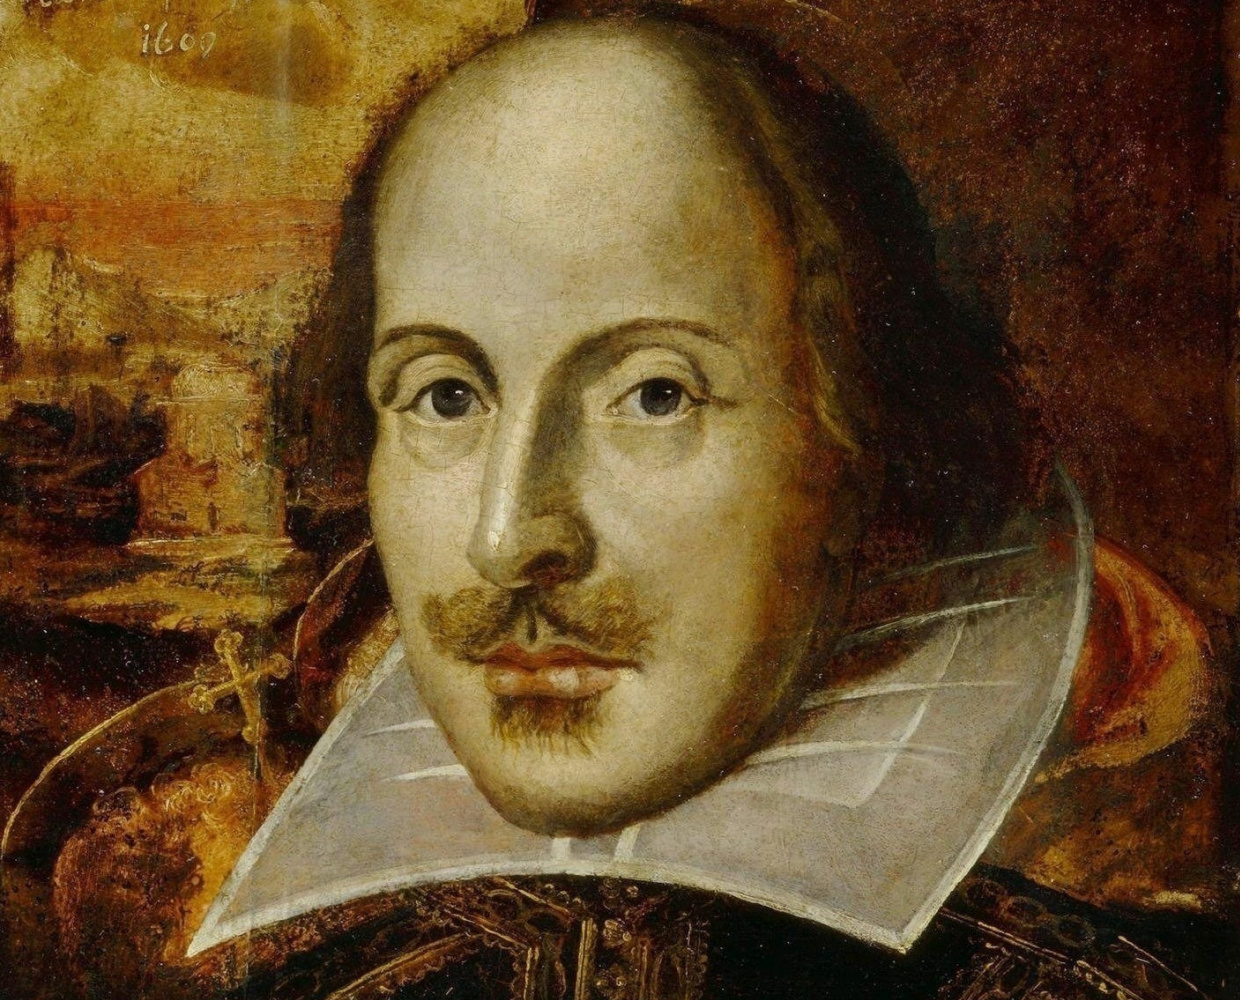 The Shakespeariad. TOP 10 Artists Who Illustrated the English Genius: from Realism to Primitivism